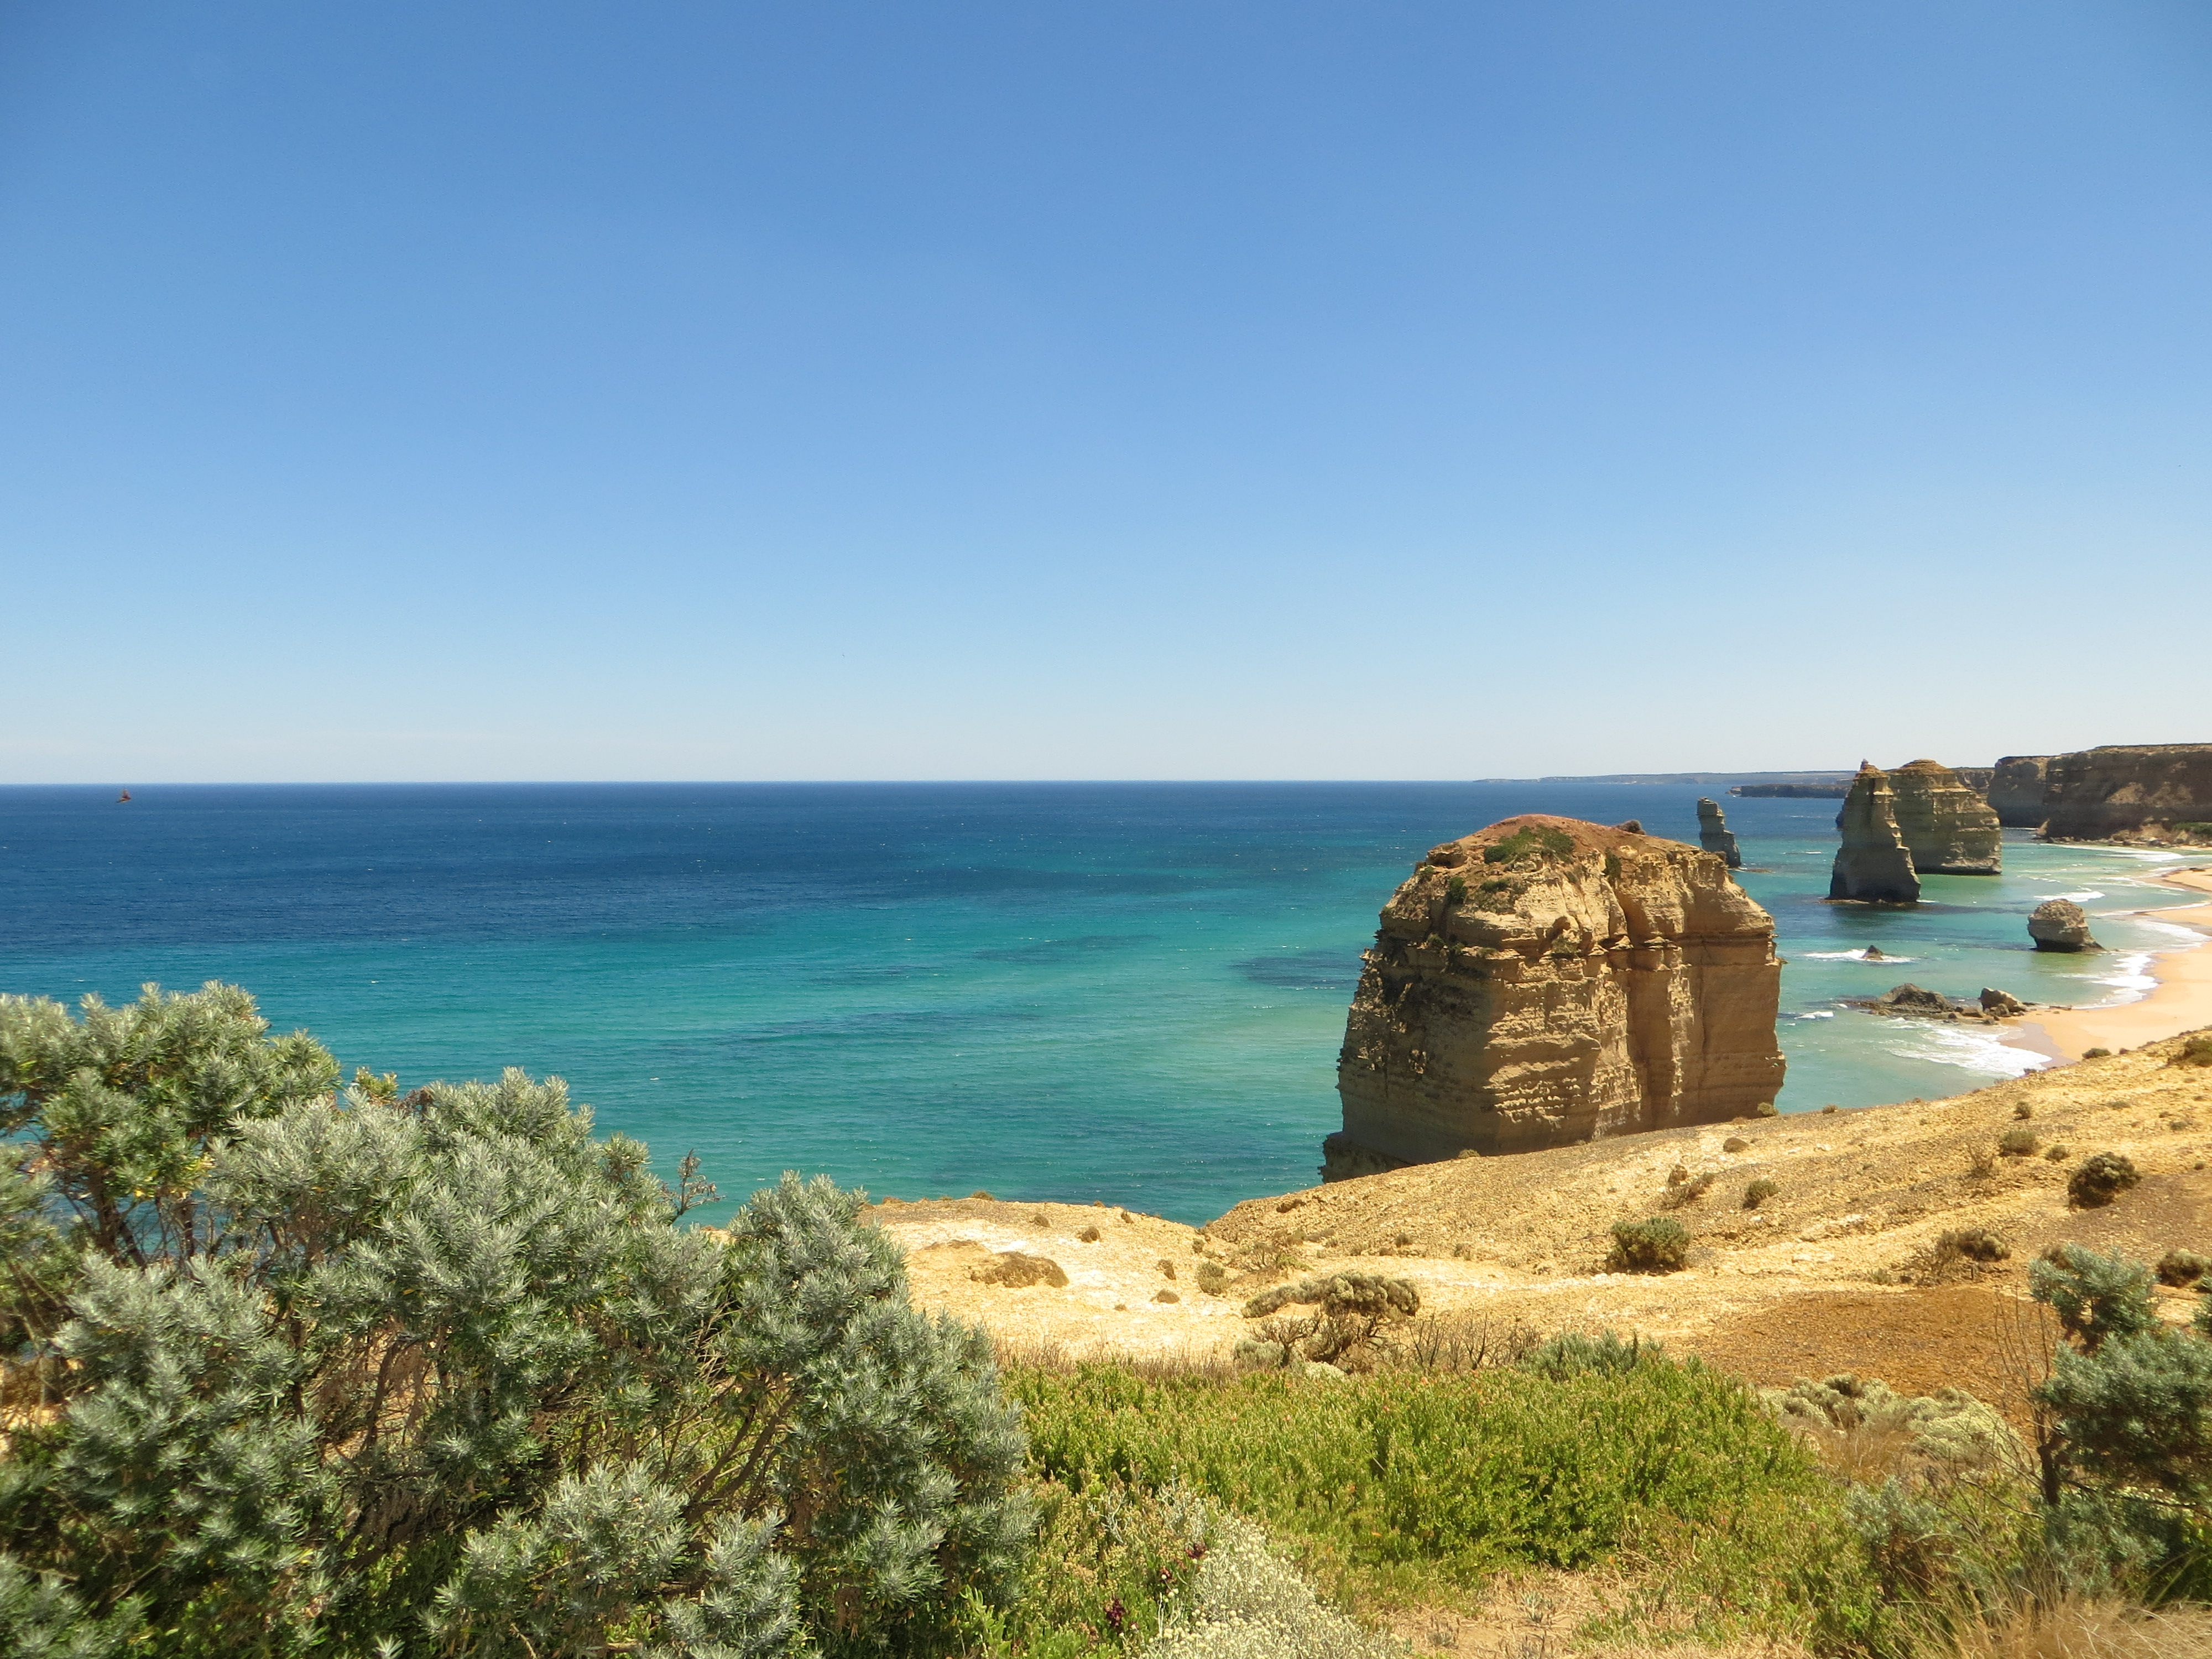 From a small path around The Twelve Apostles